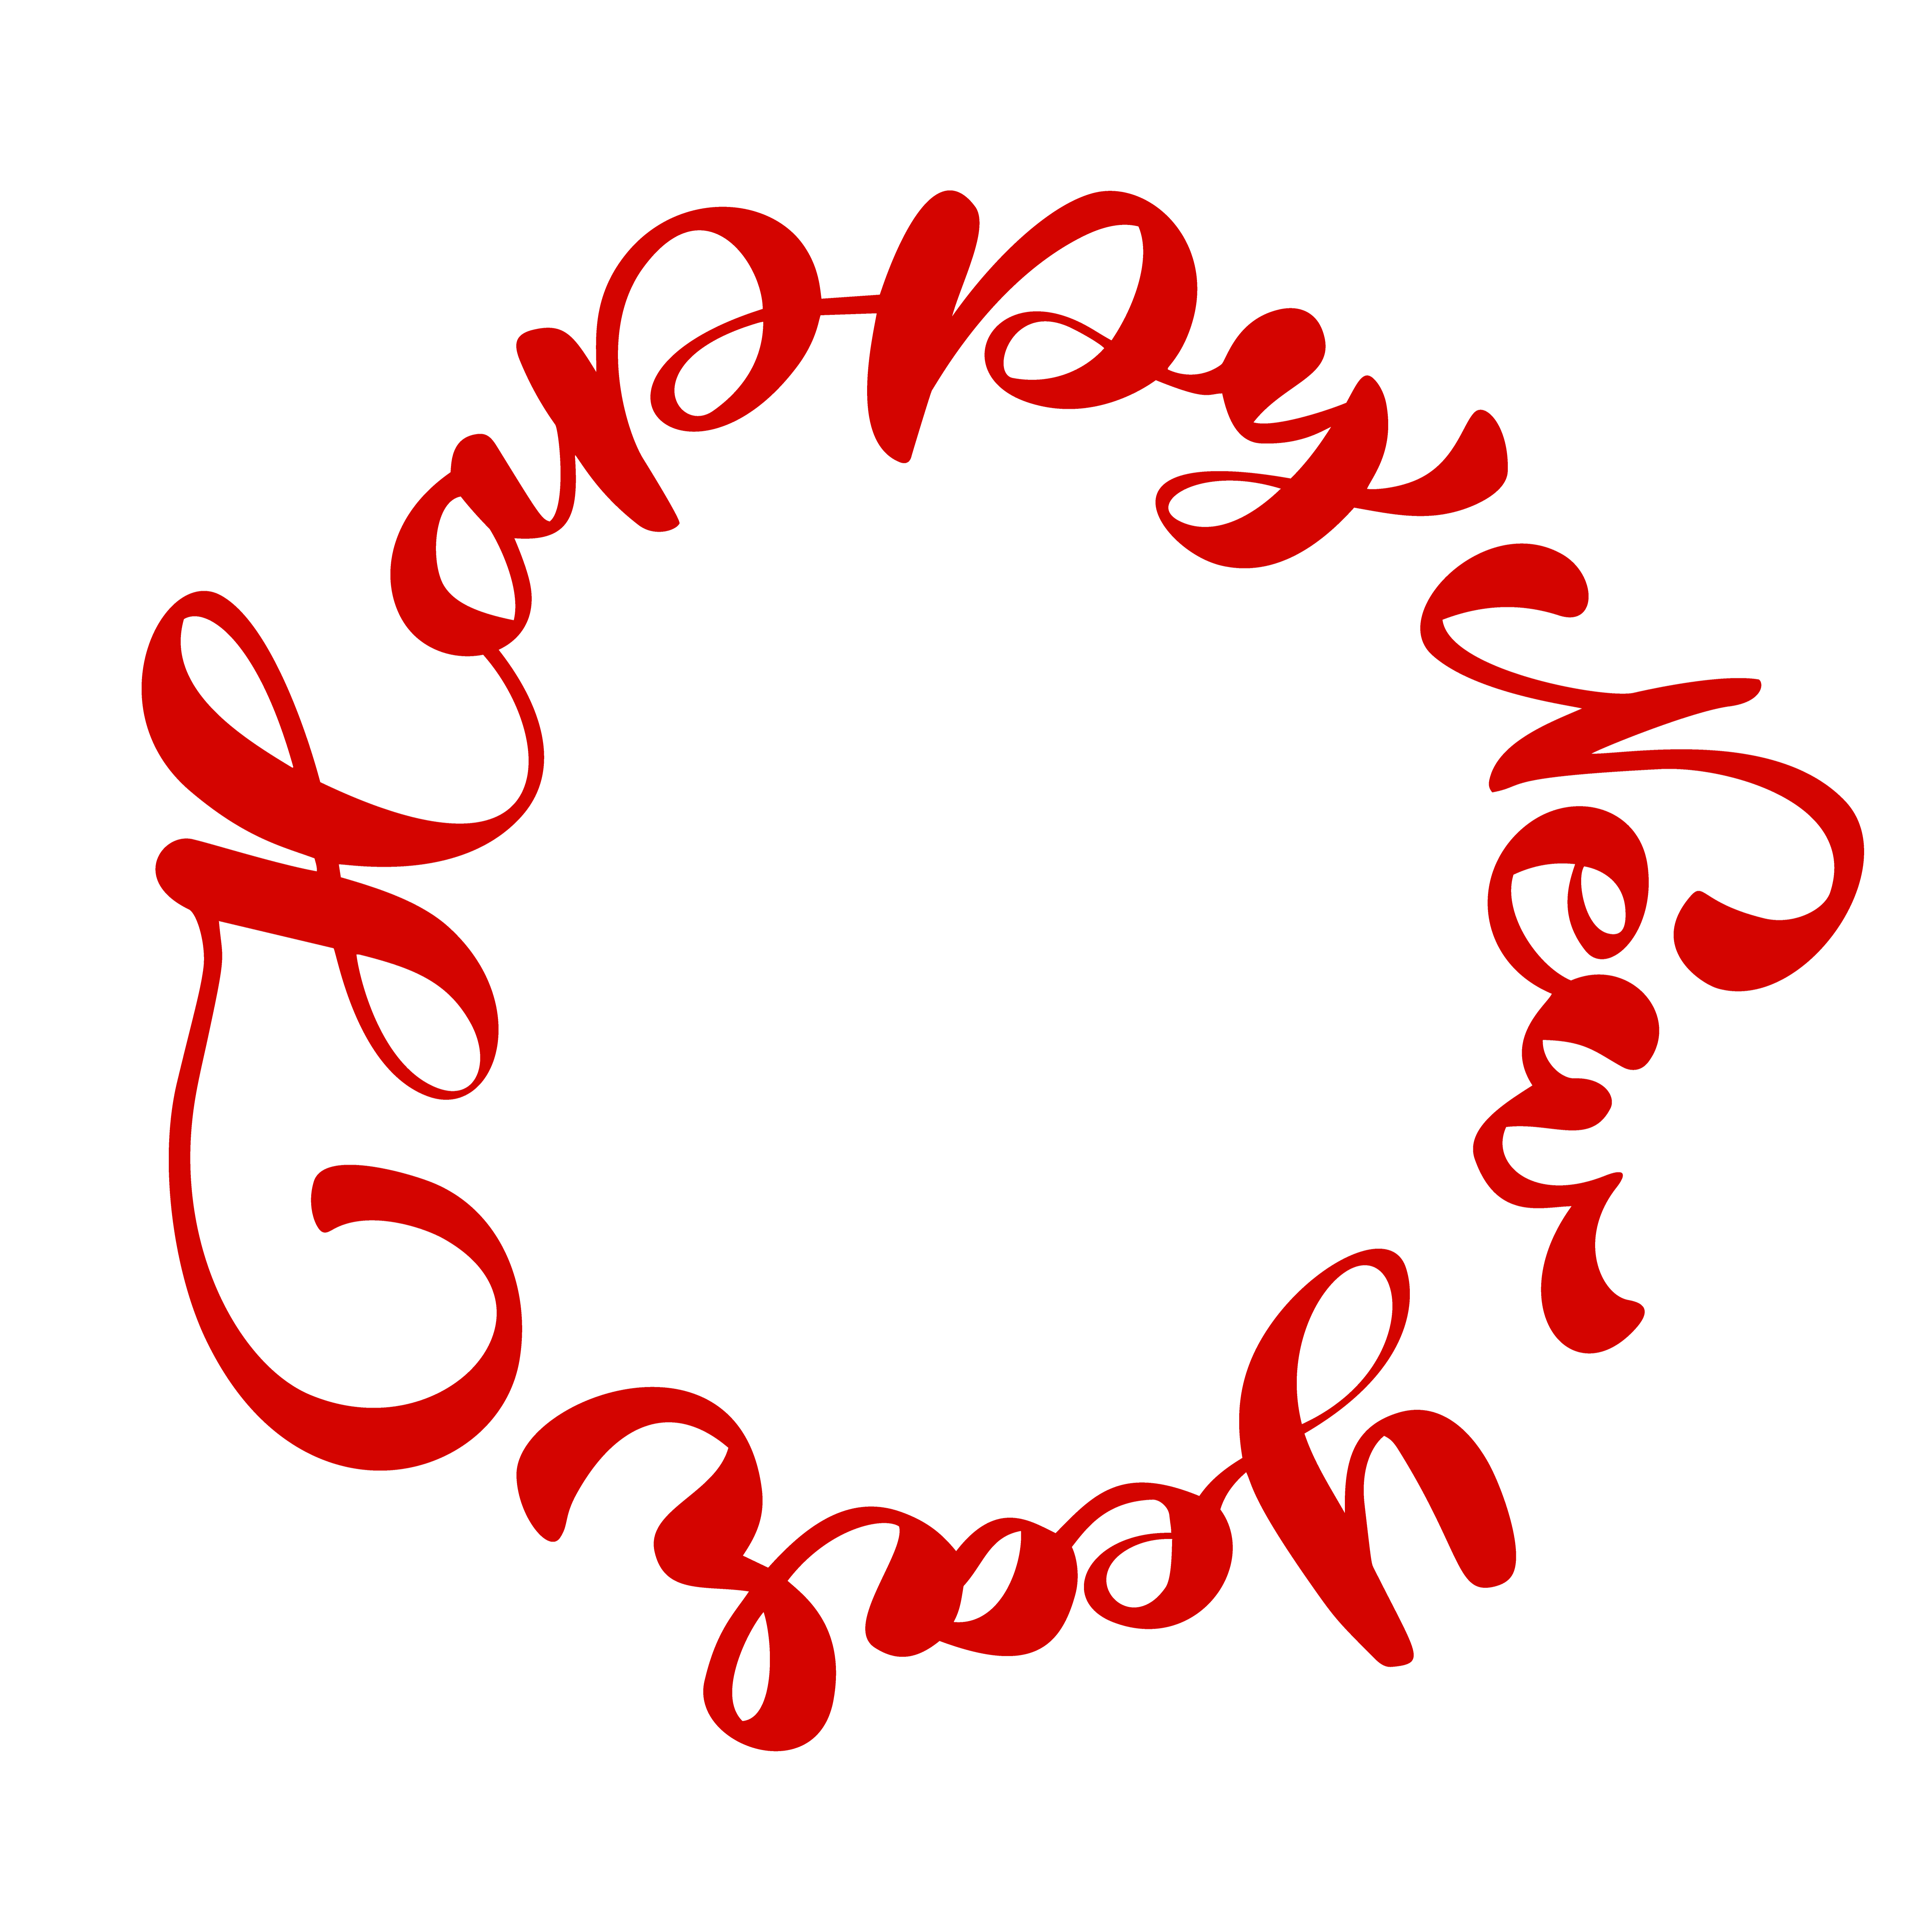 happy new year handlettering text written in a circle